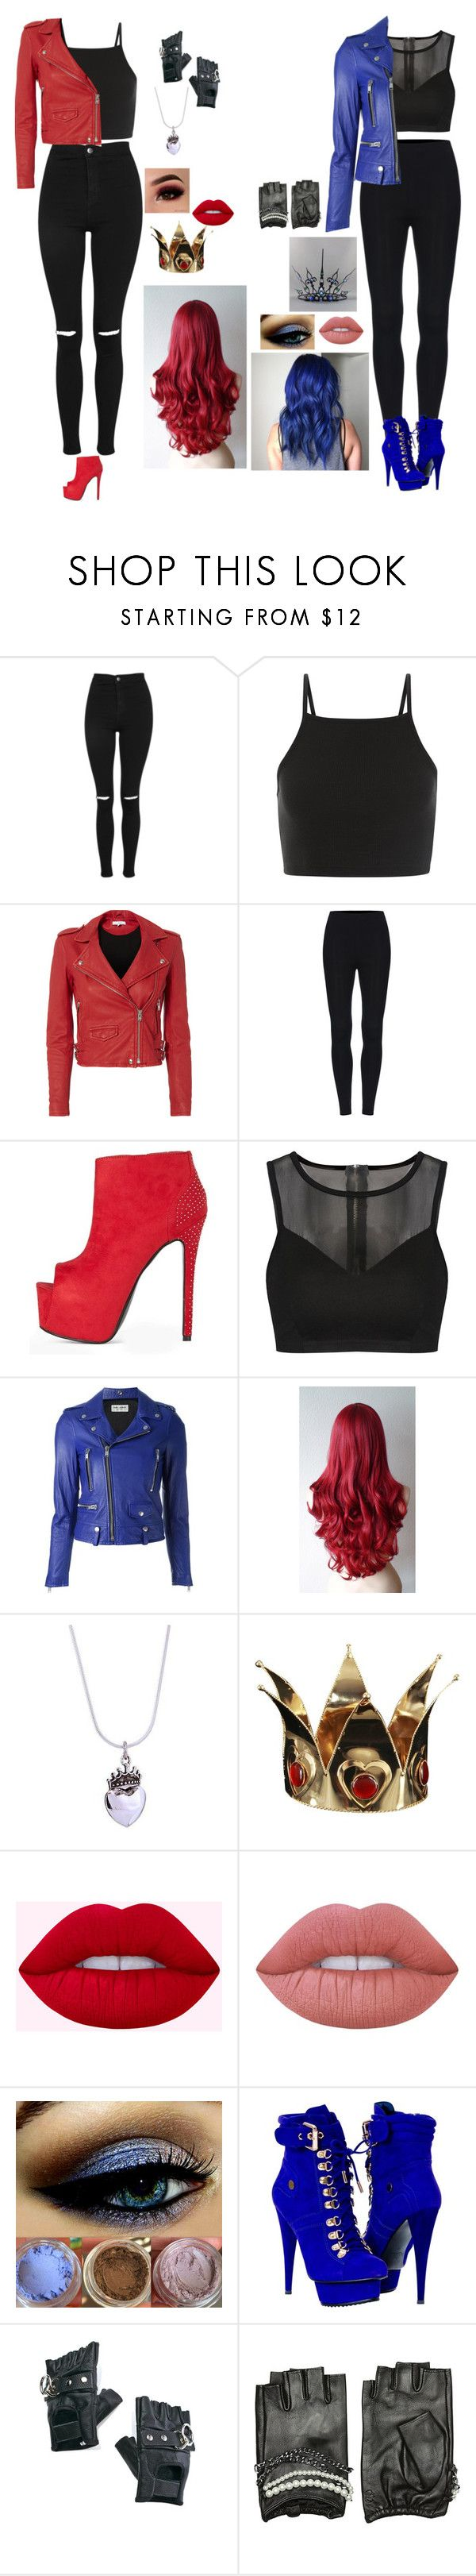 """""""going back to the isle to help ben get mal back //Filming"""" by maddiemoxly ❤ liked on Polyvore featuring Topshop, IRO, Yves Saint Laurent, Ultimate, NOVICA, Lime Crime, Paolo Shoes, Funk Plus and Karl Lagerfeld"""